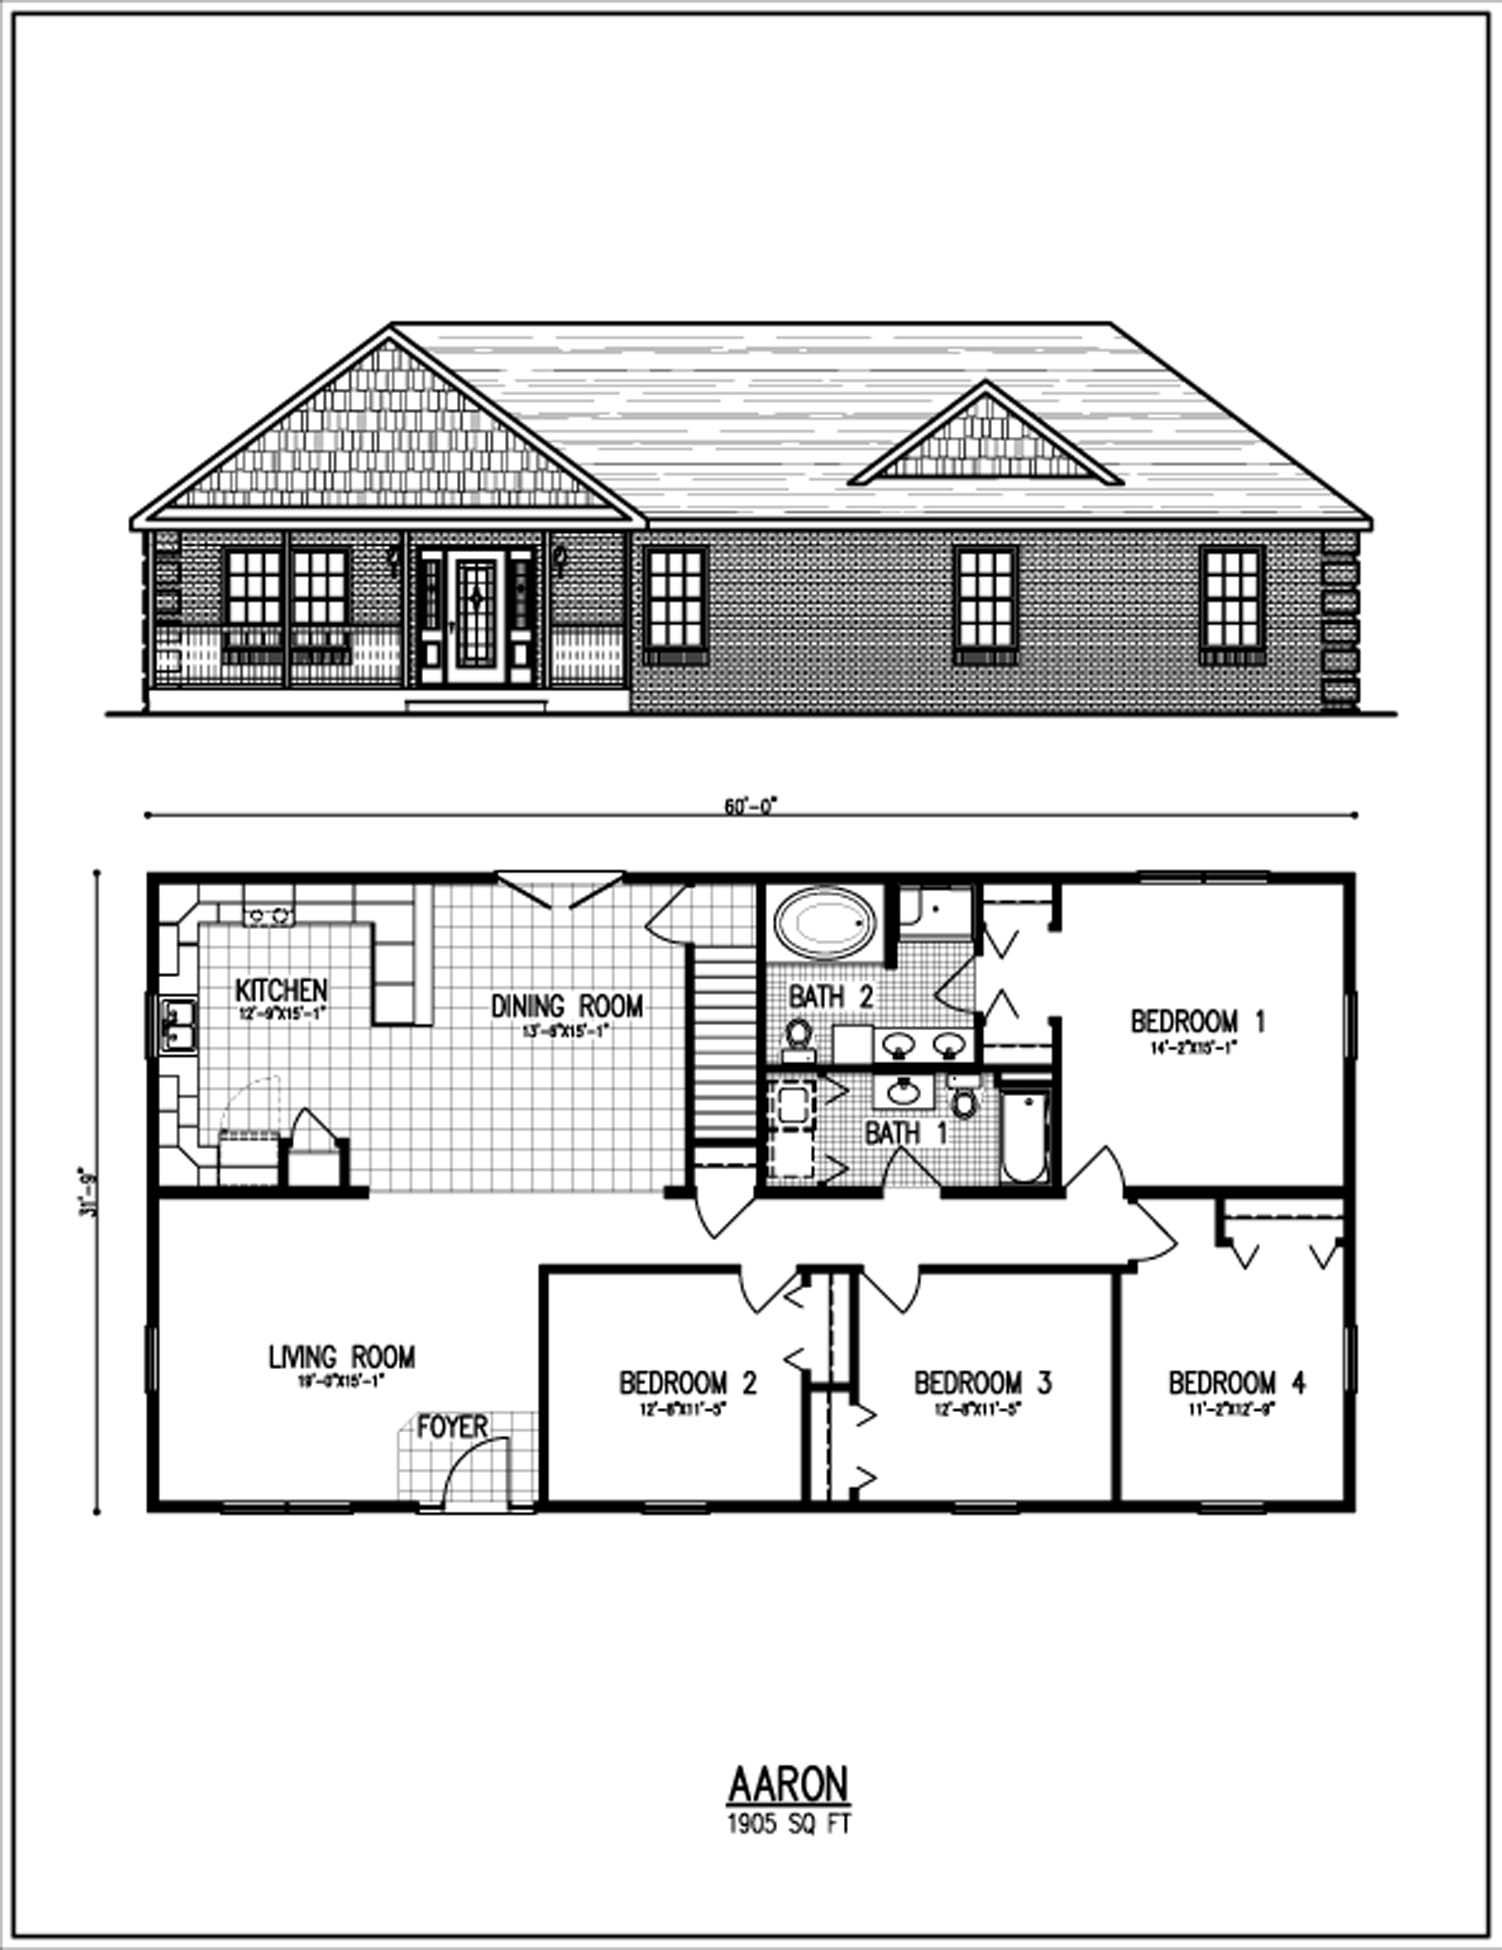 1000 images about small house plans on pinterest ranch homes - Small Ranch House Plans